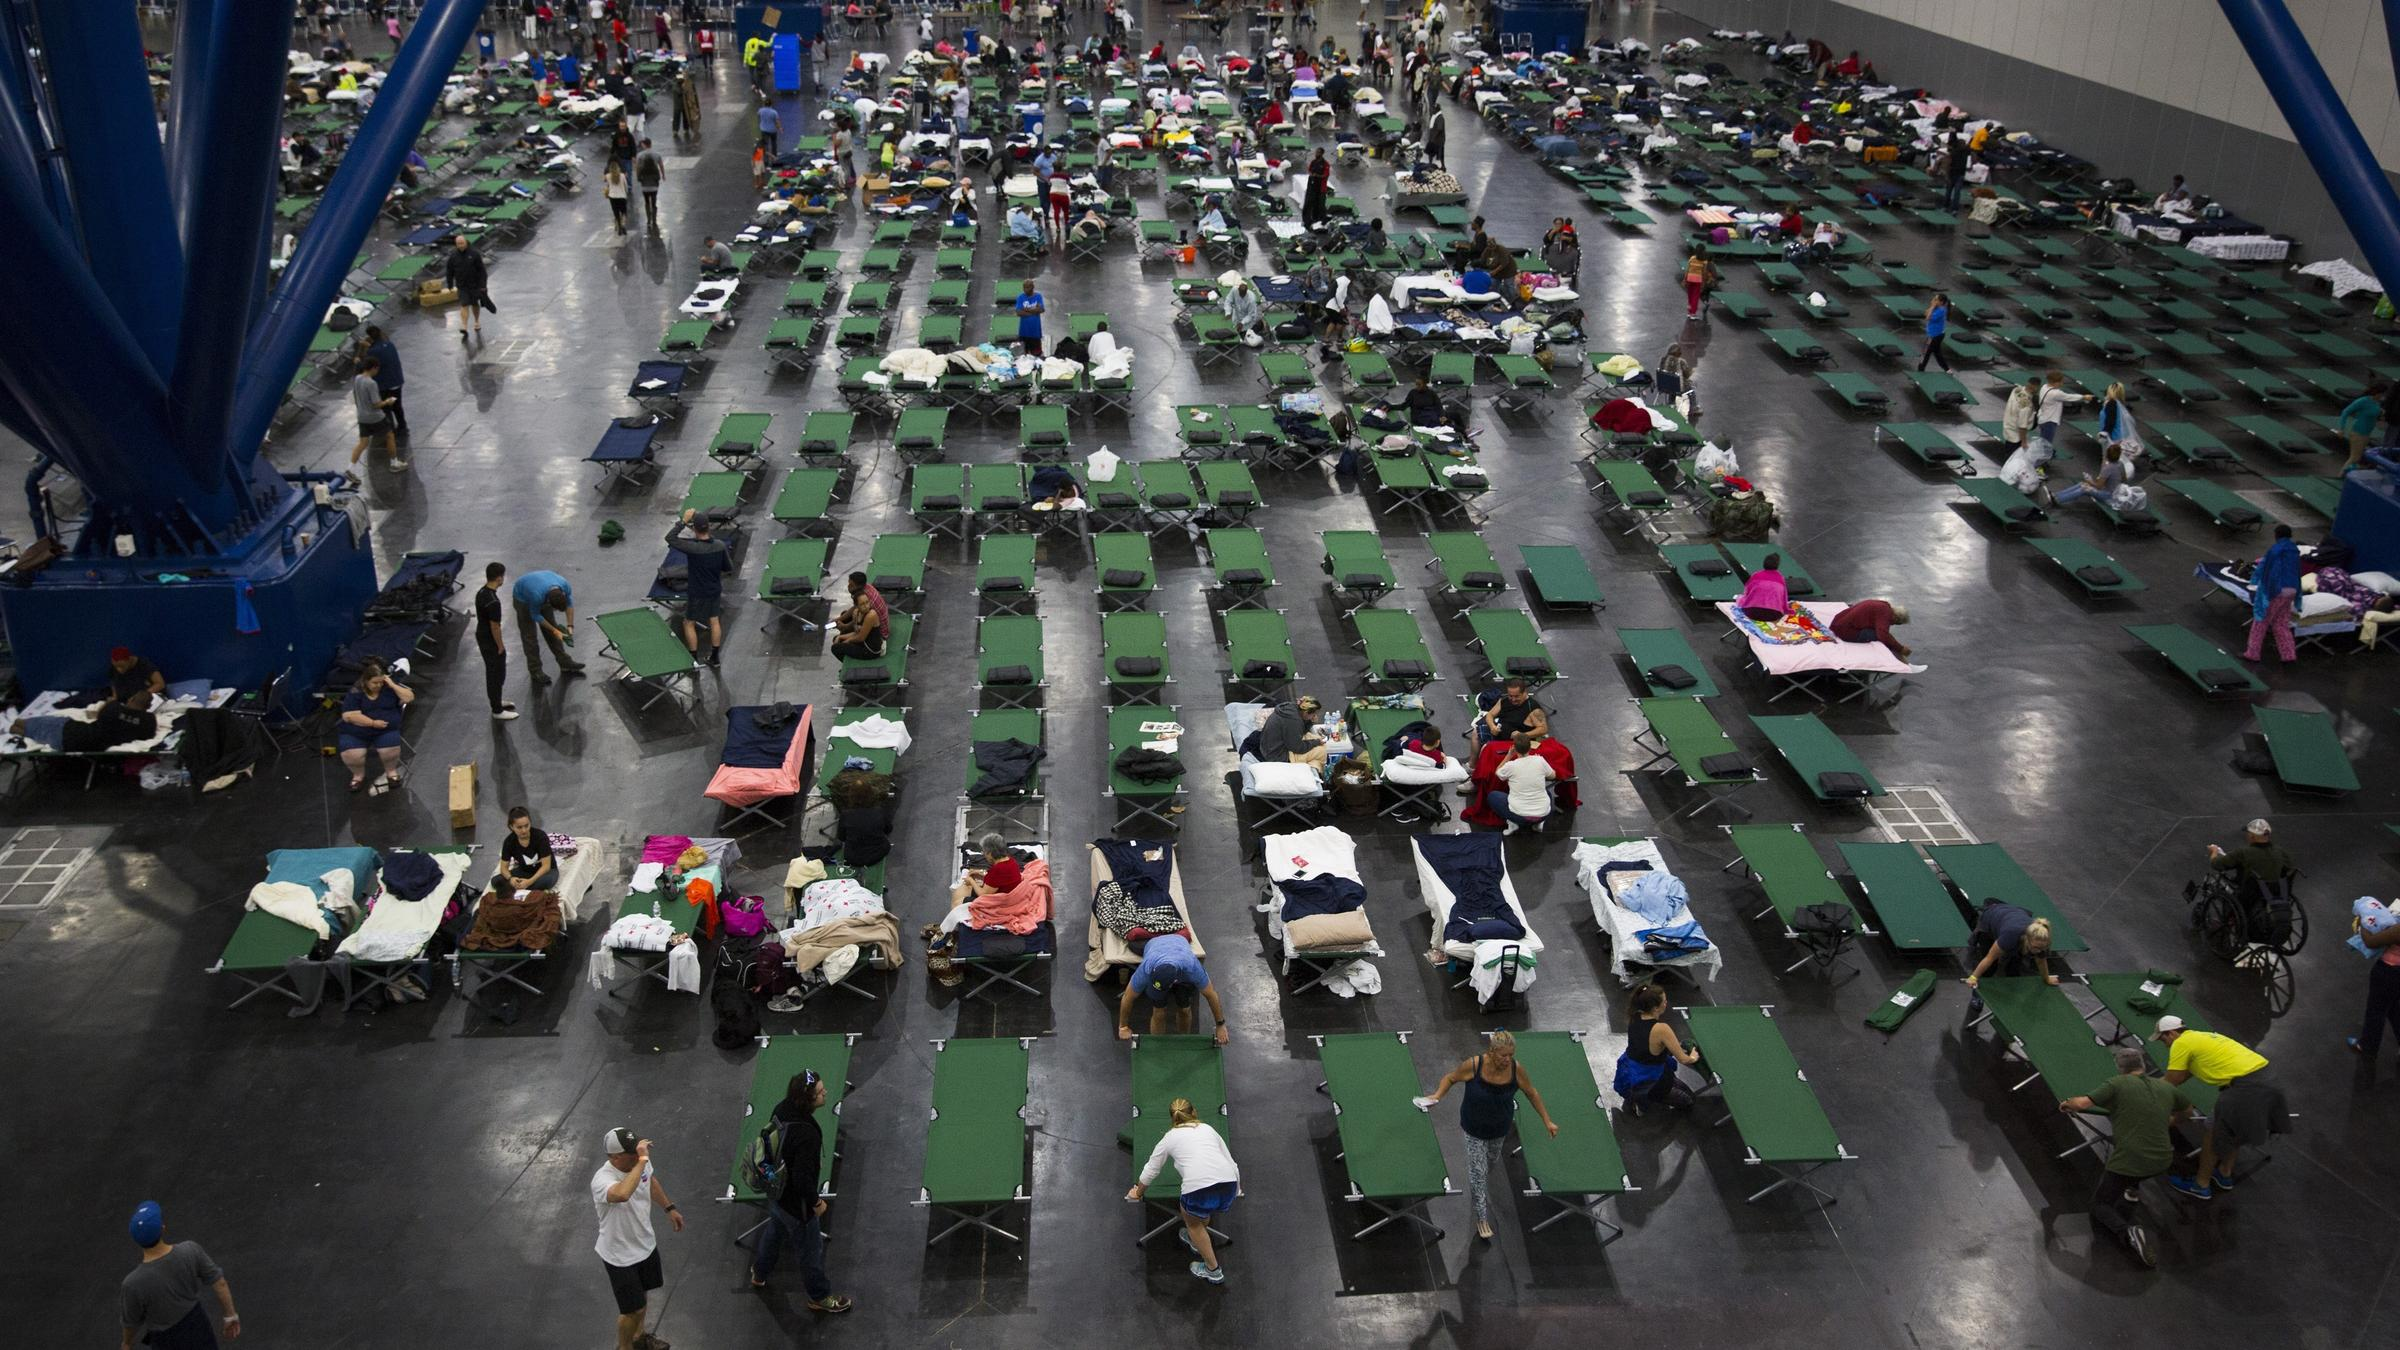 Evacuees fill up cots Monday at the George Brown Convention Center in Houston, which has